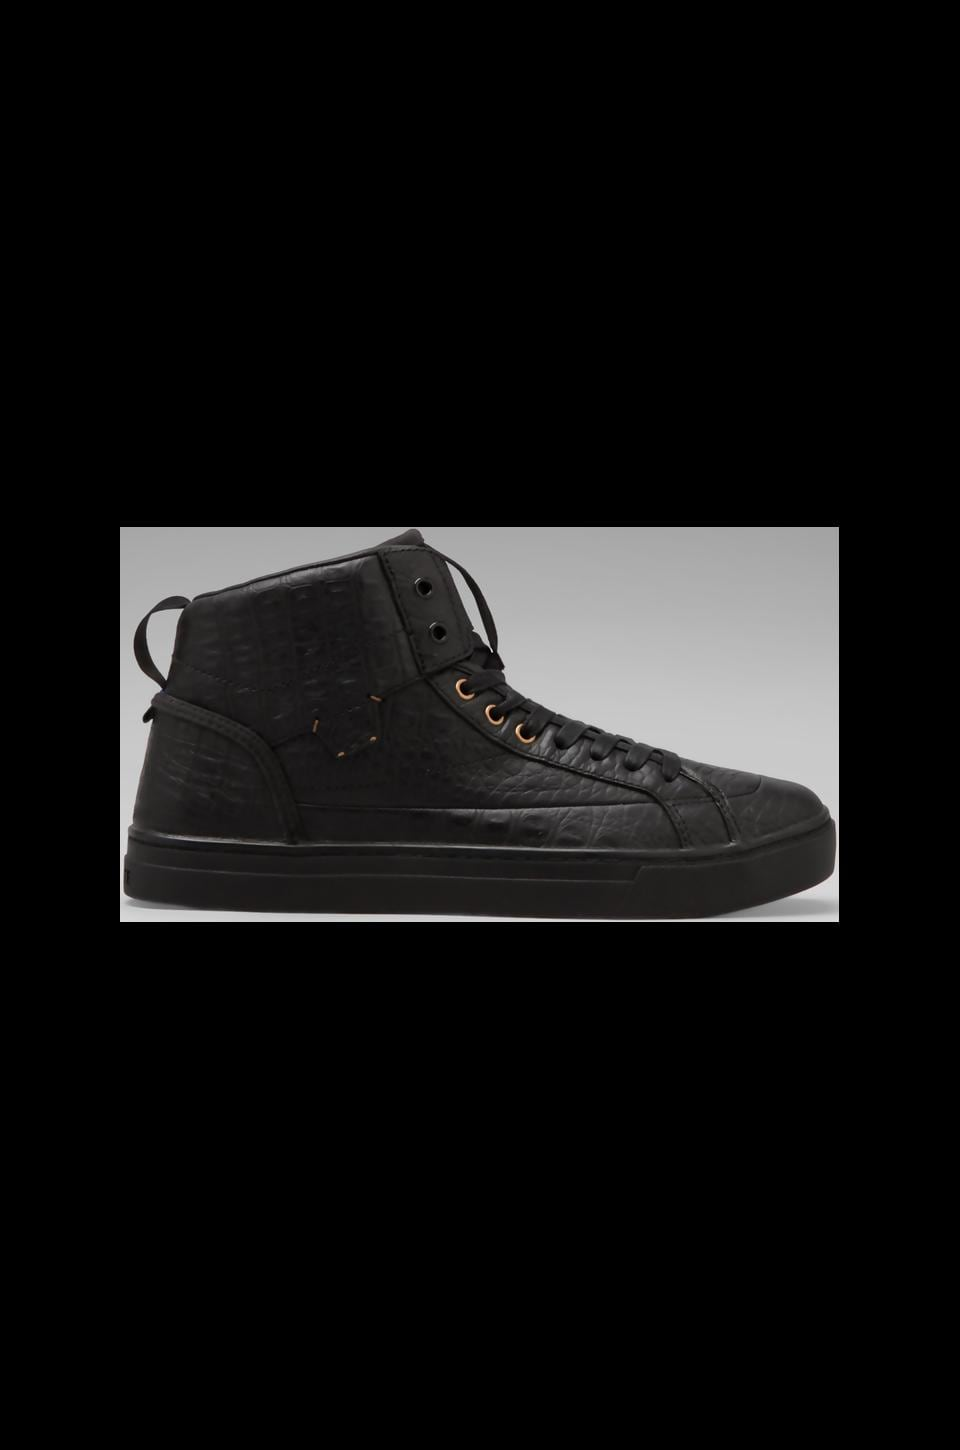 Lacoste Live Berrick Mid AT in Black/Black